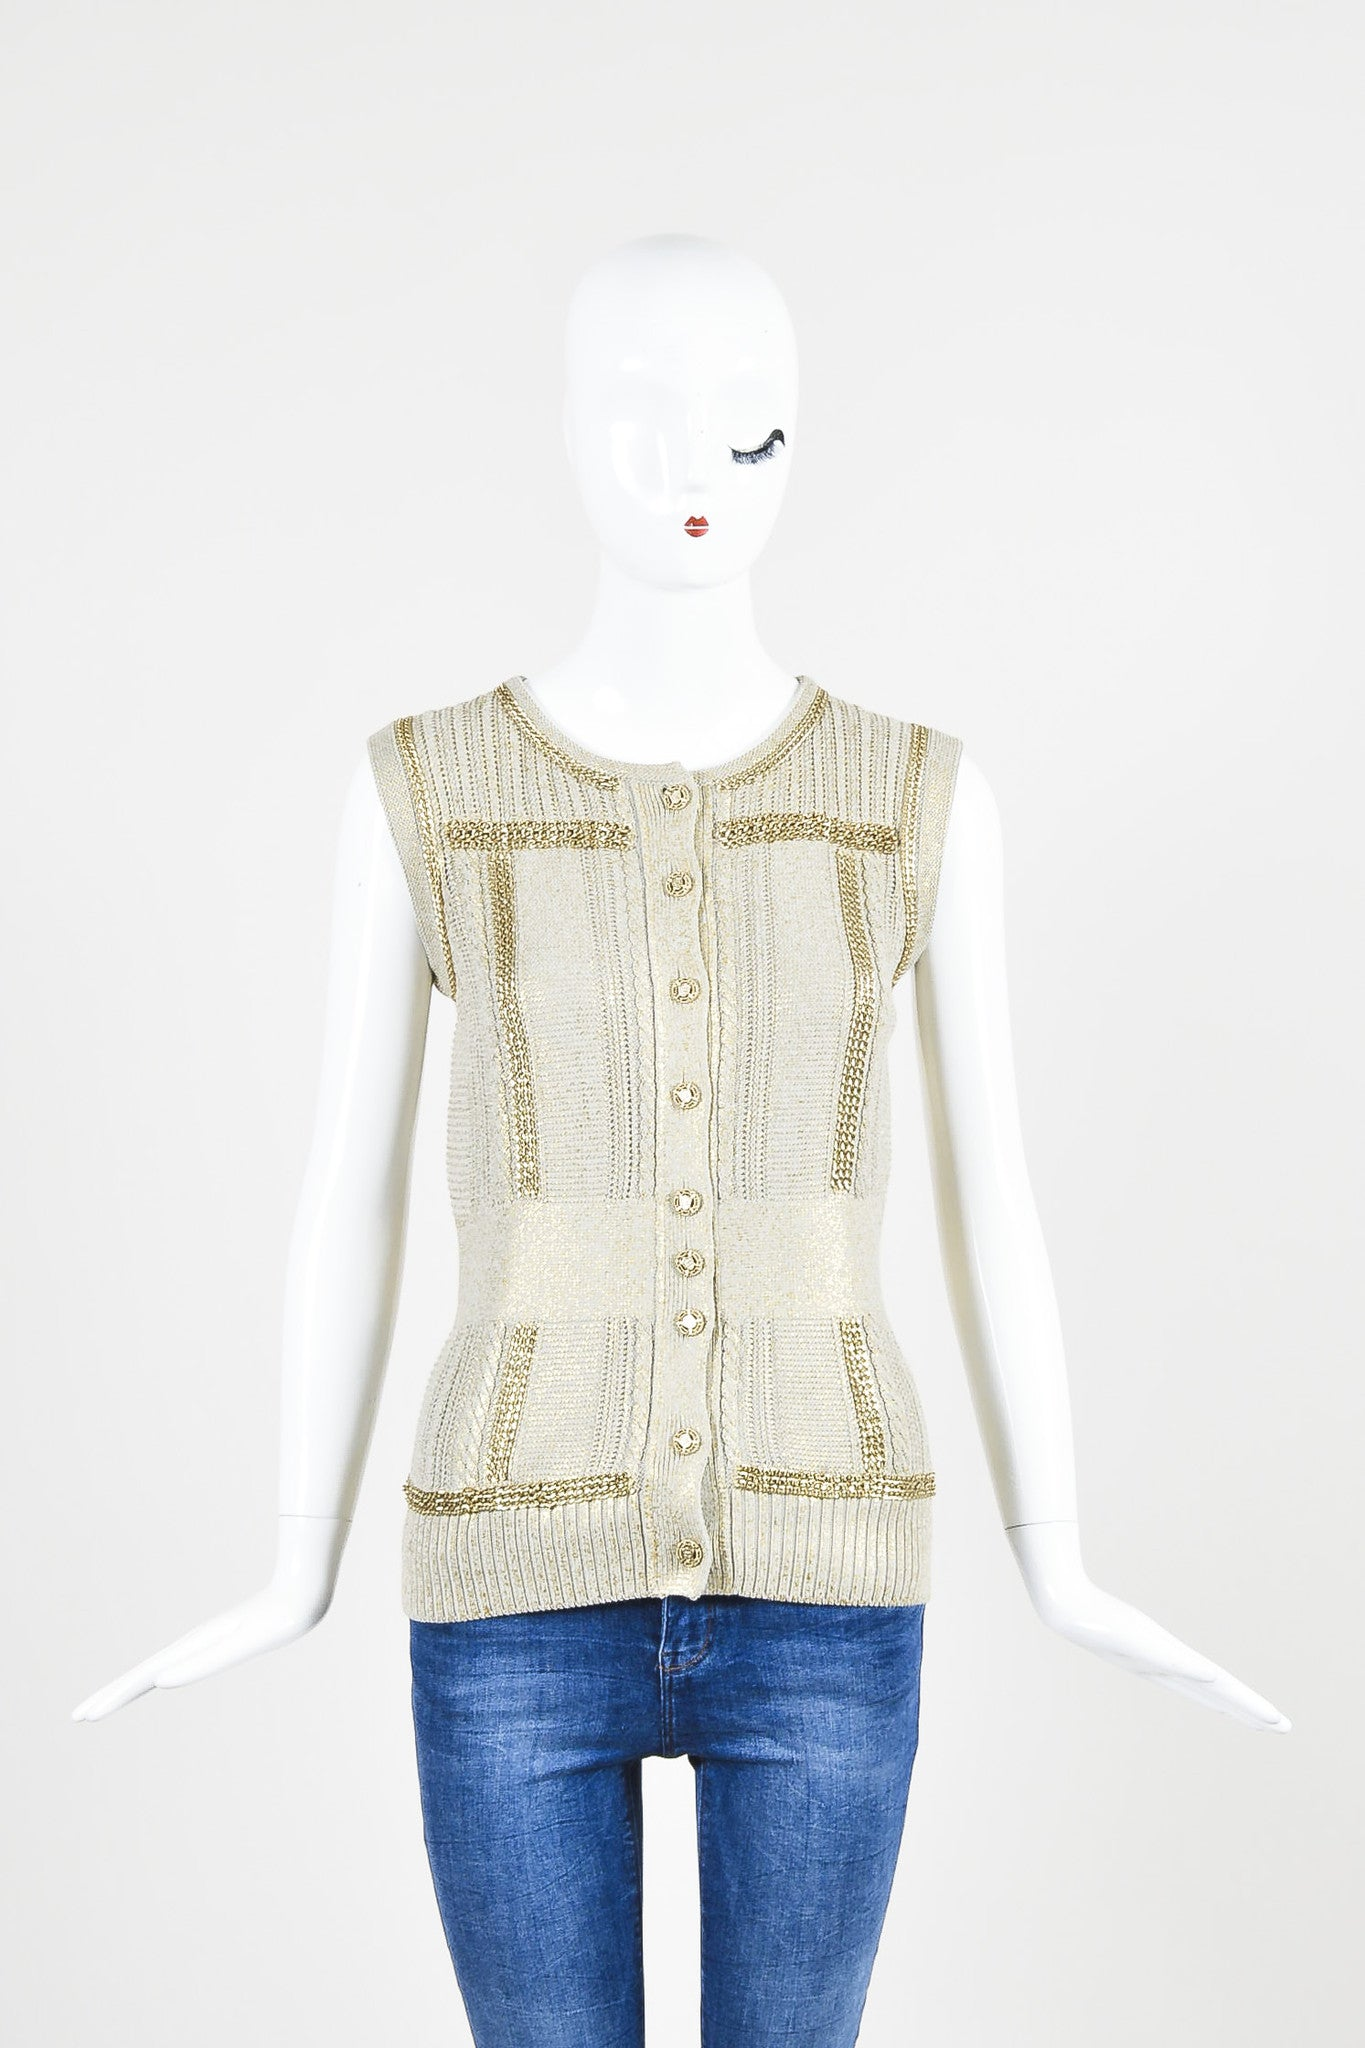 Chanel Taupe Metallic Gold Chain Trim 'CC' Shield Button Sleeveless Cardigan Vest Frontview